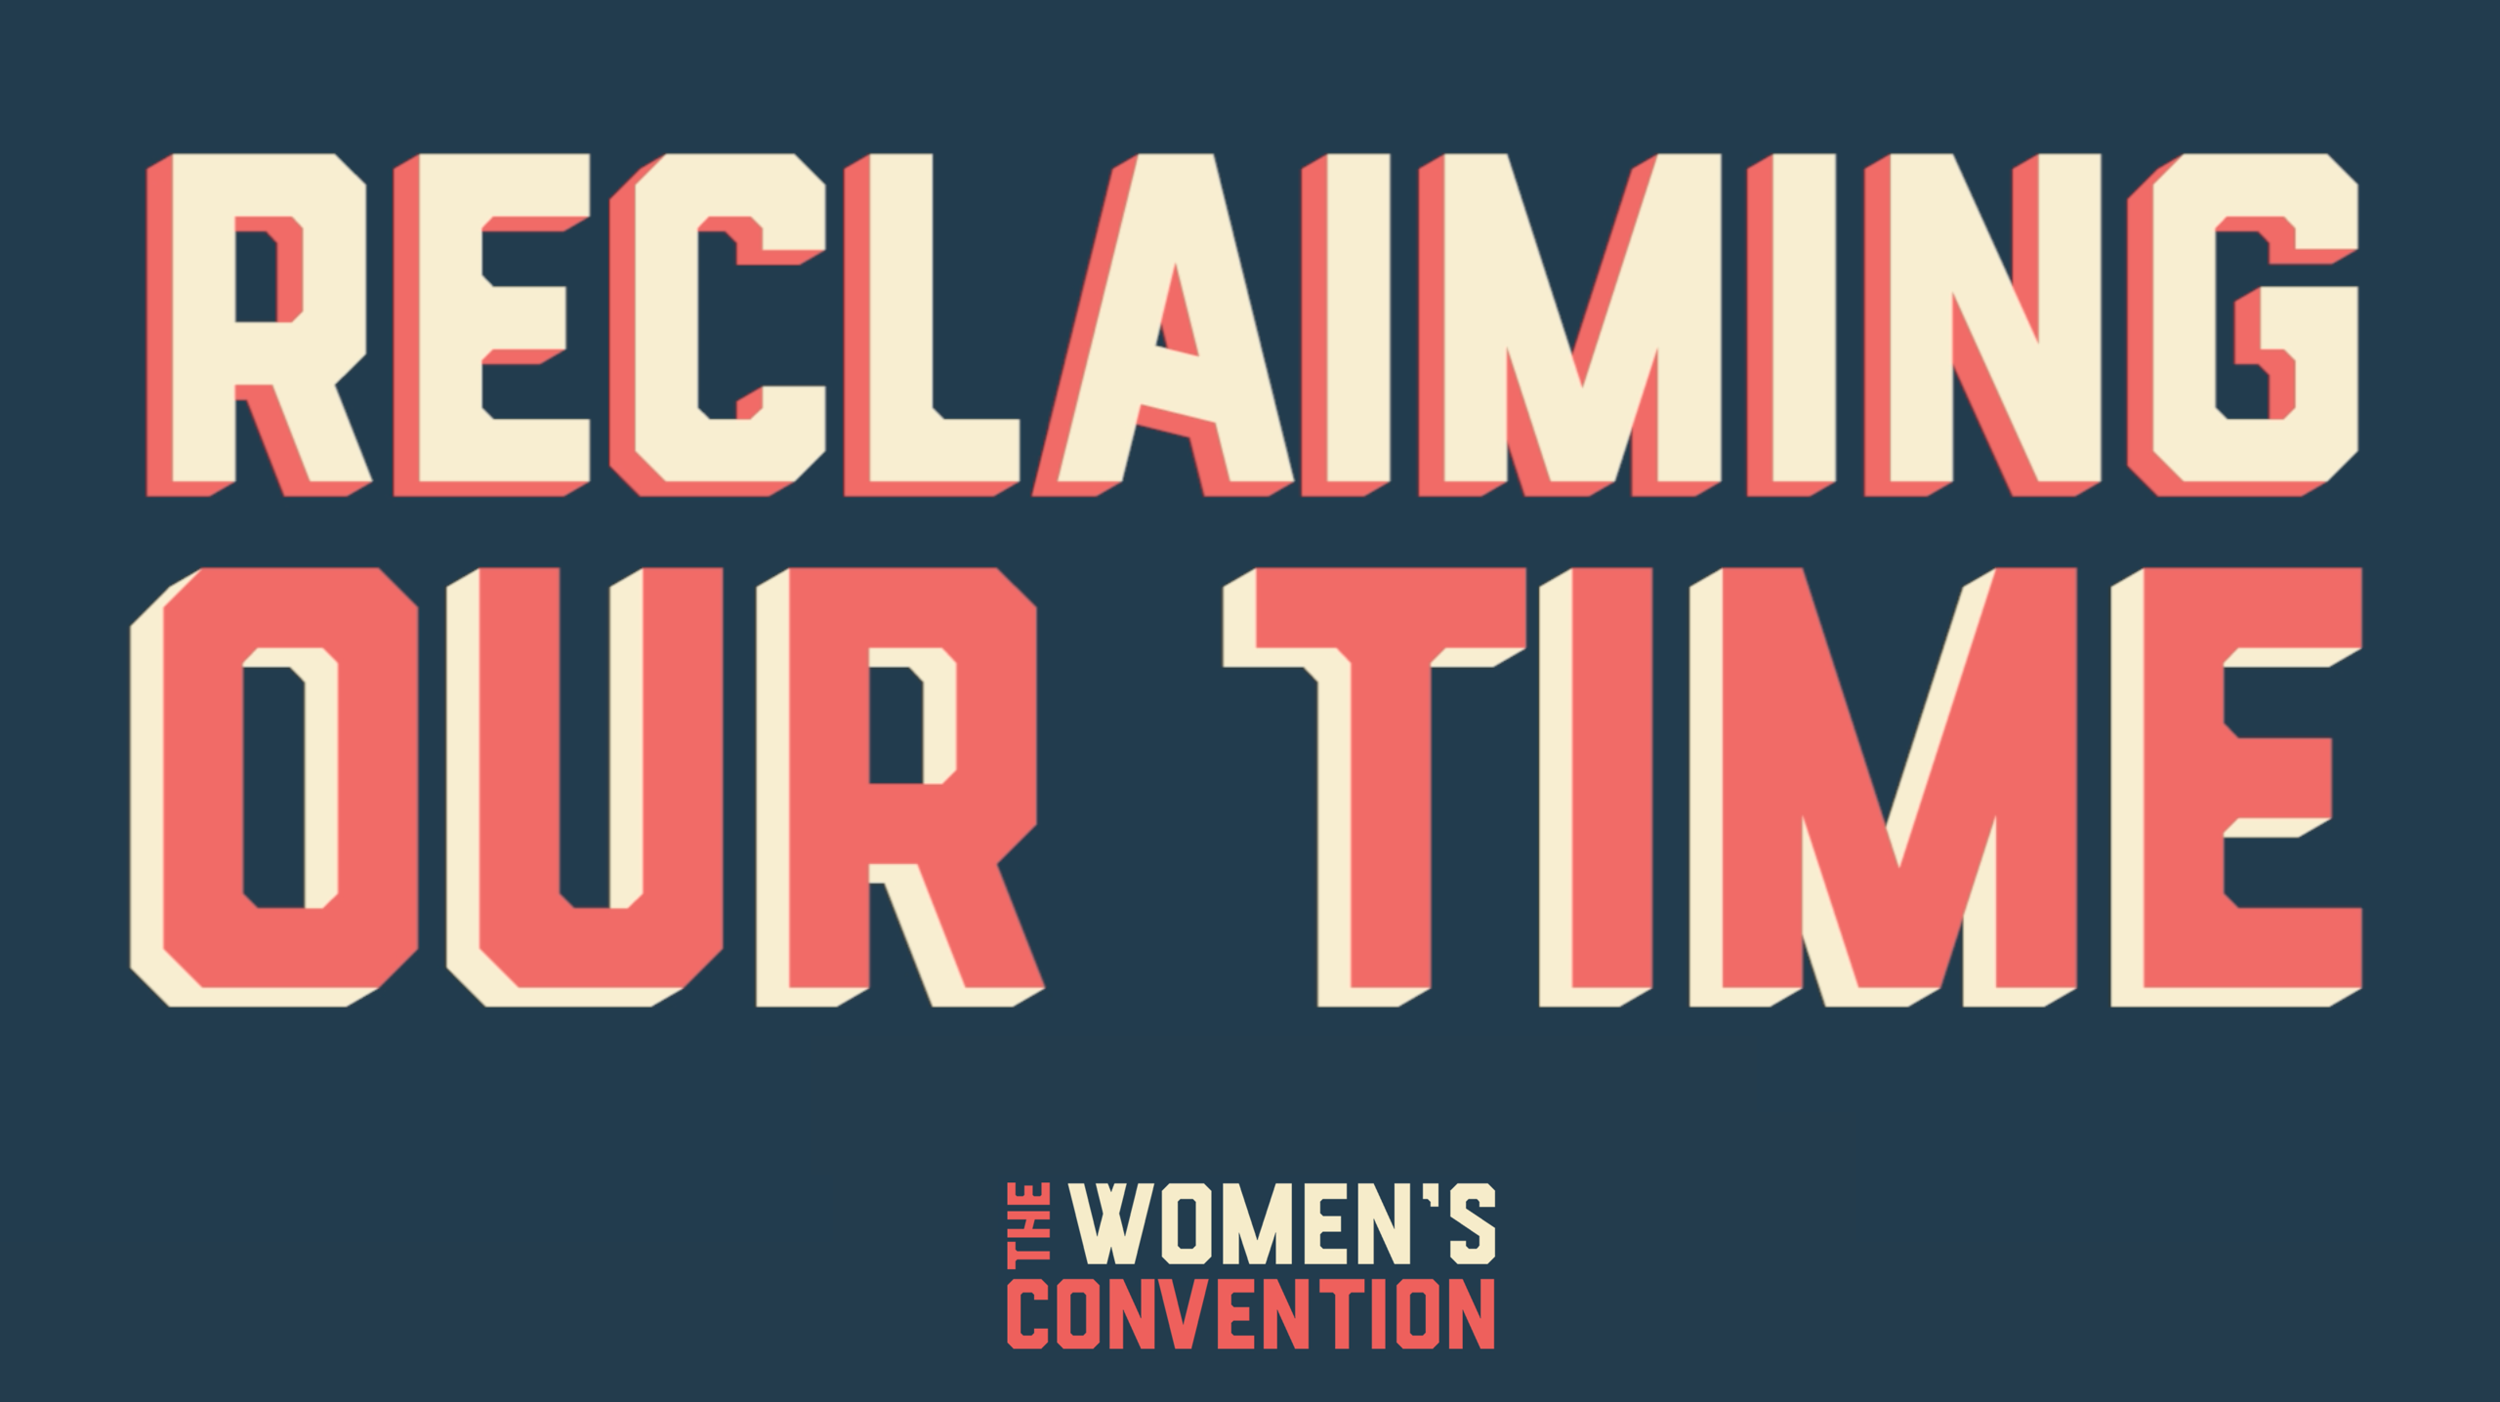 Women's Convention Social Media Graphic